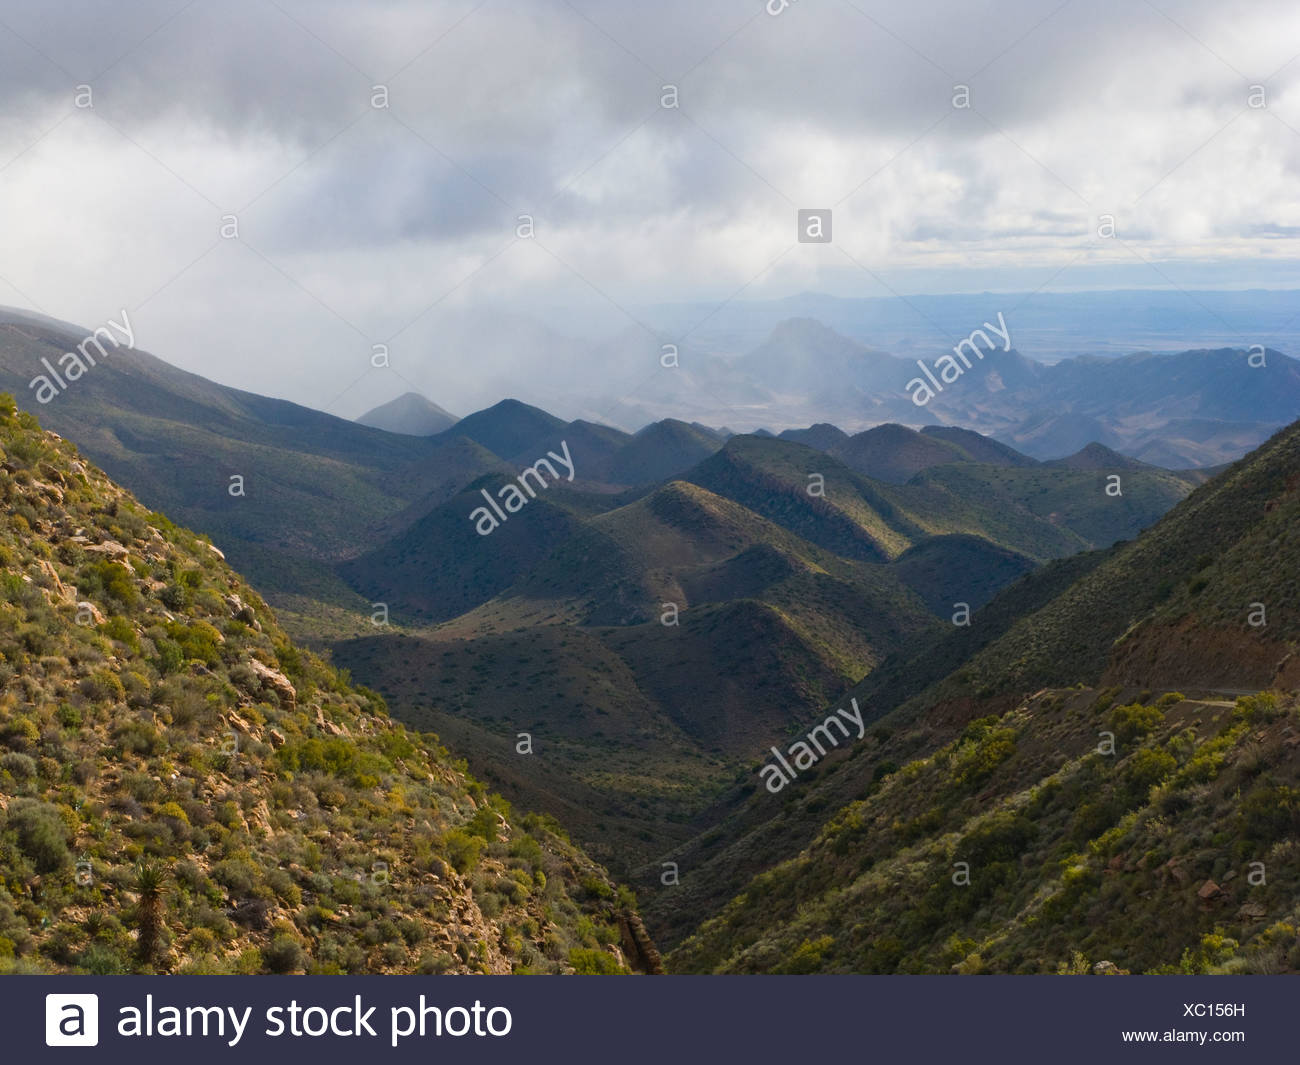 Karroo landscape after recent rains.  Heavy fog indicative of distant showers. - Stock Image